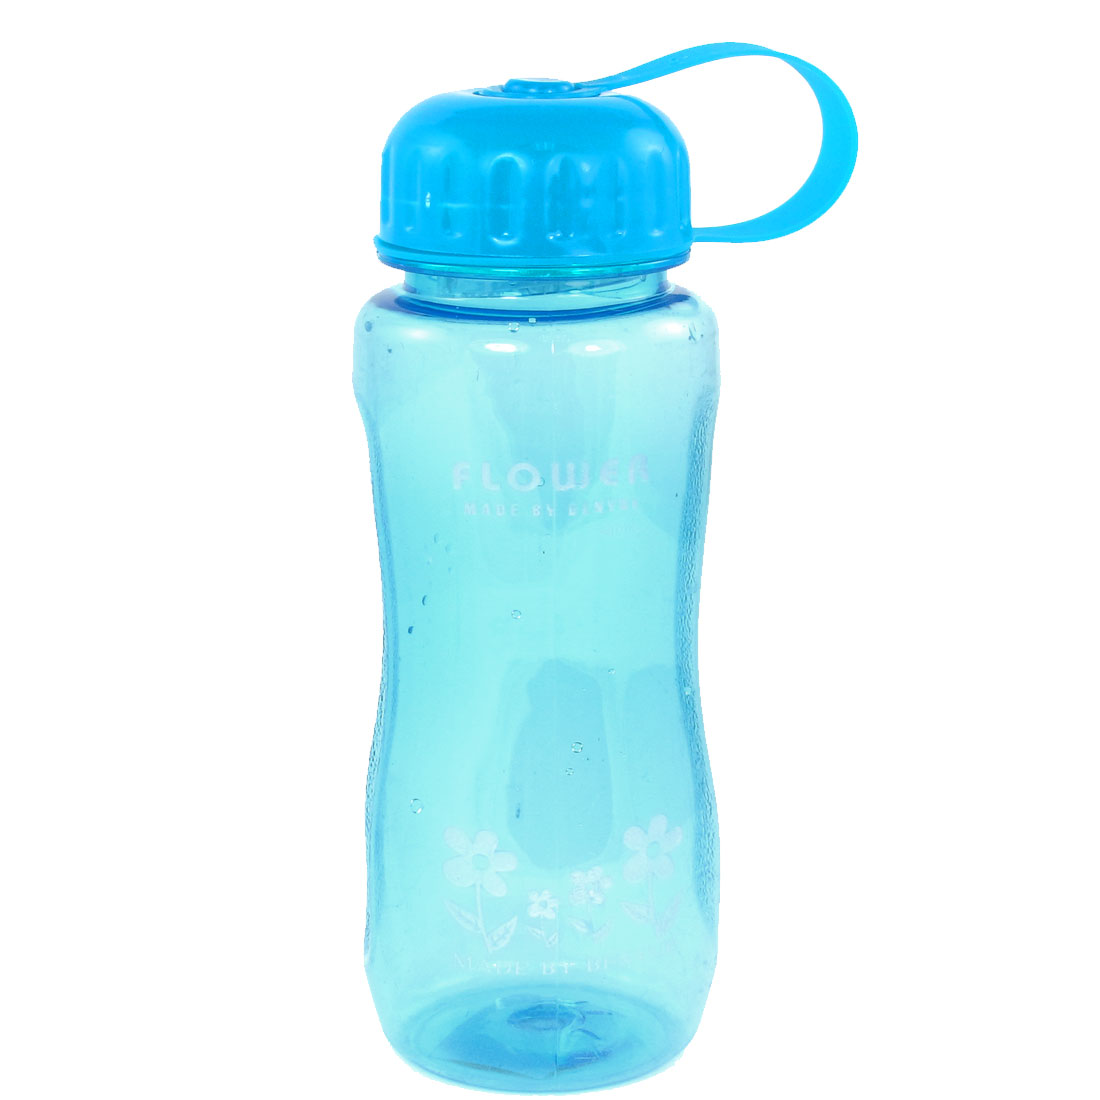 Blue Cap Flower Print Cylinder Shape Clear Plastic Water Bottle Cup 400ml